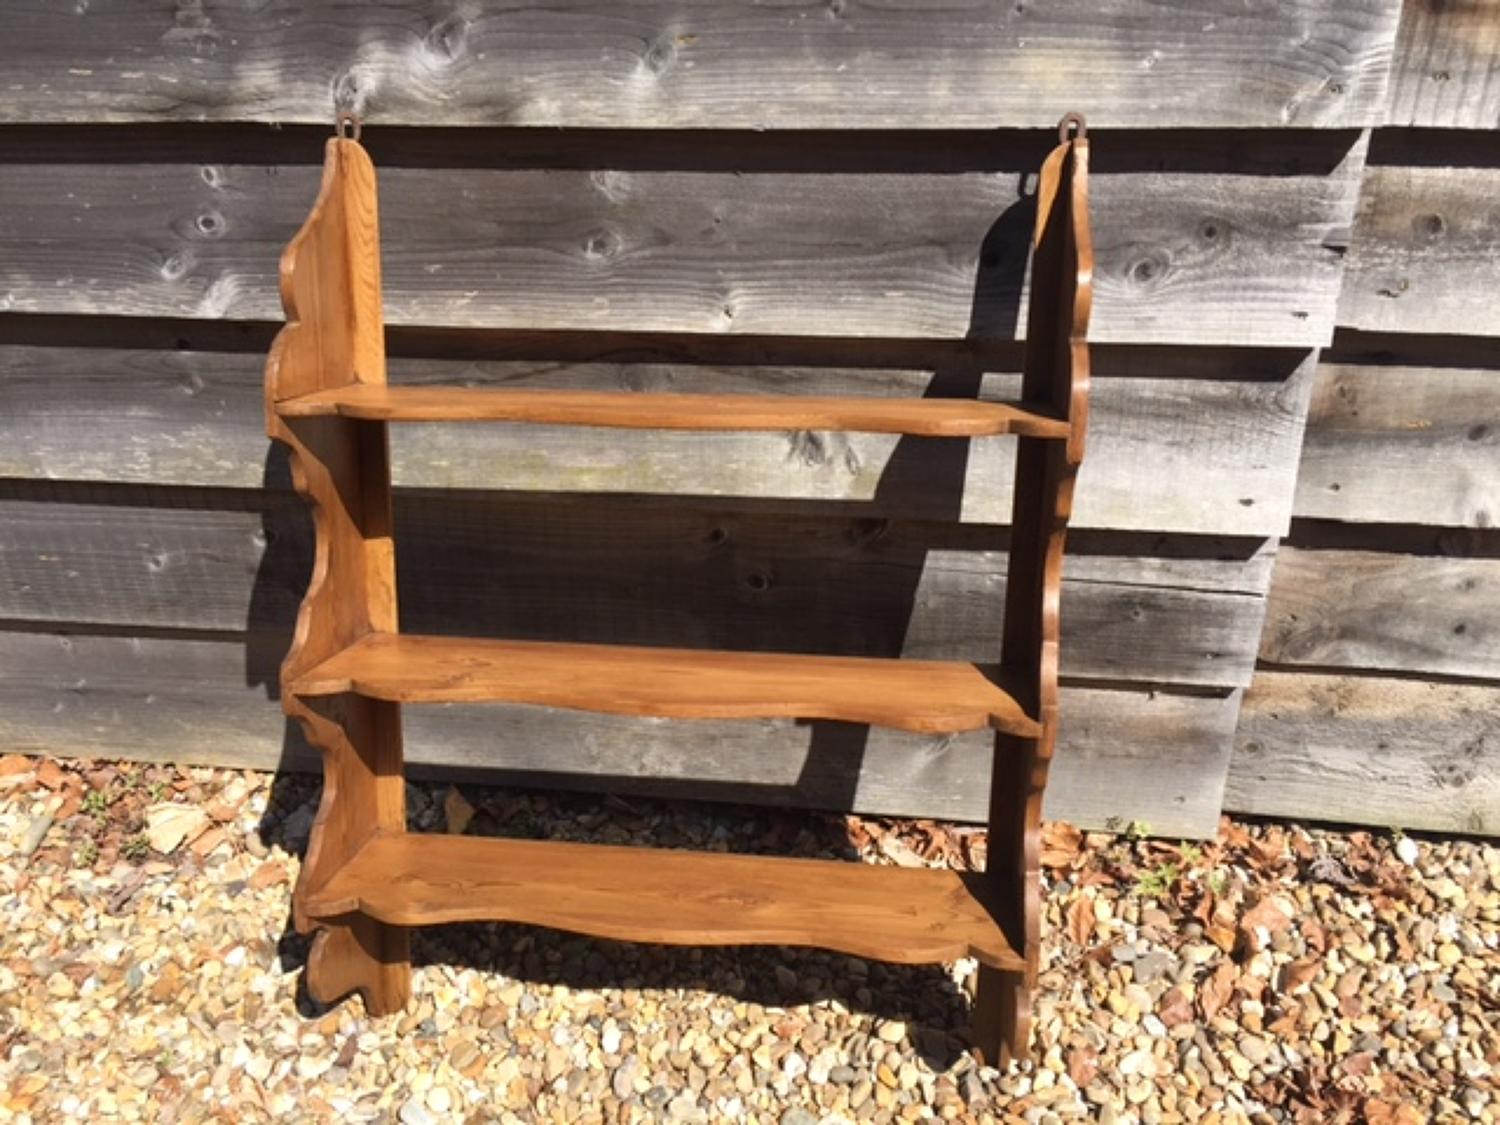 Antique Pine Wall Shelves